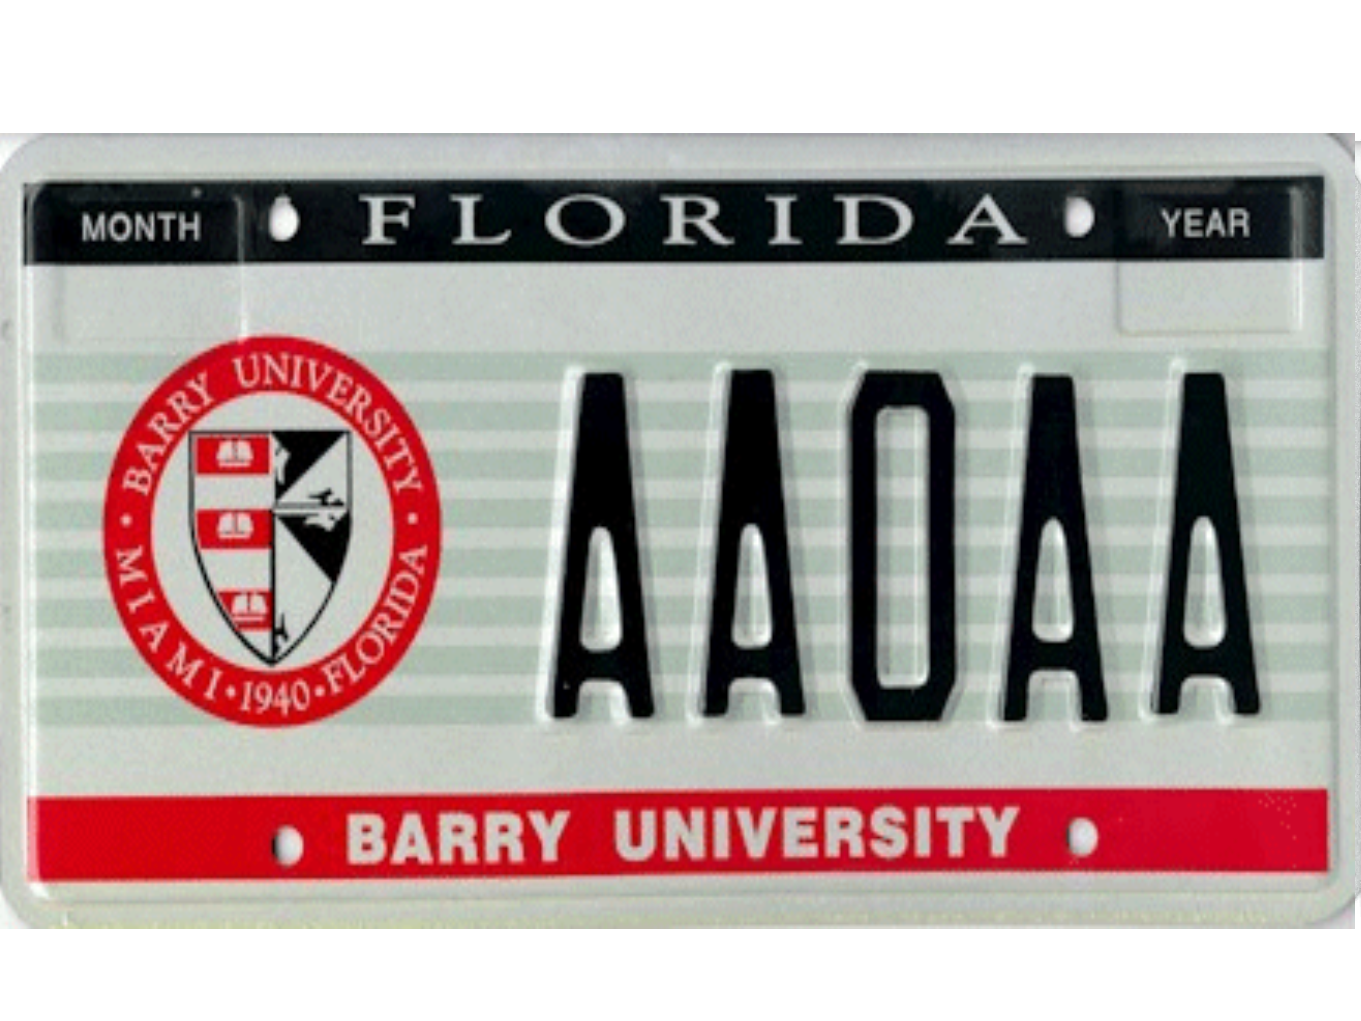 The Barry University license plate.